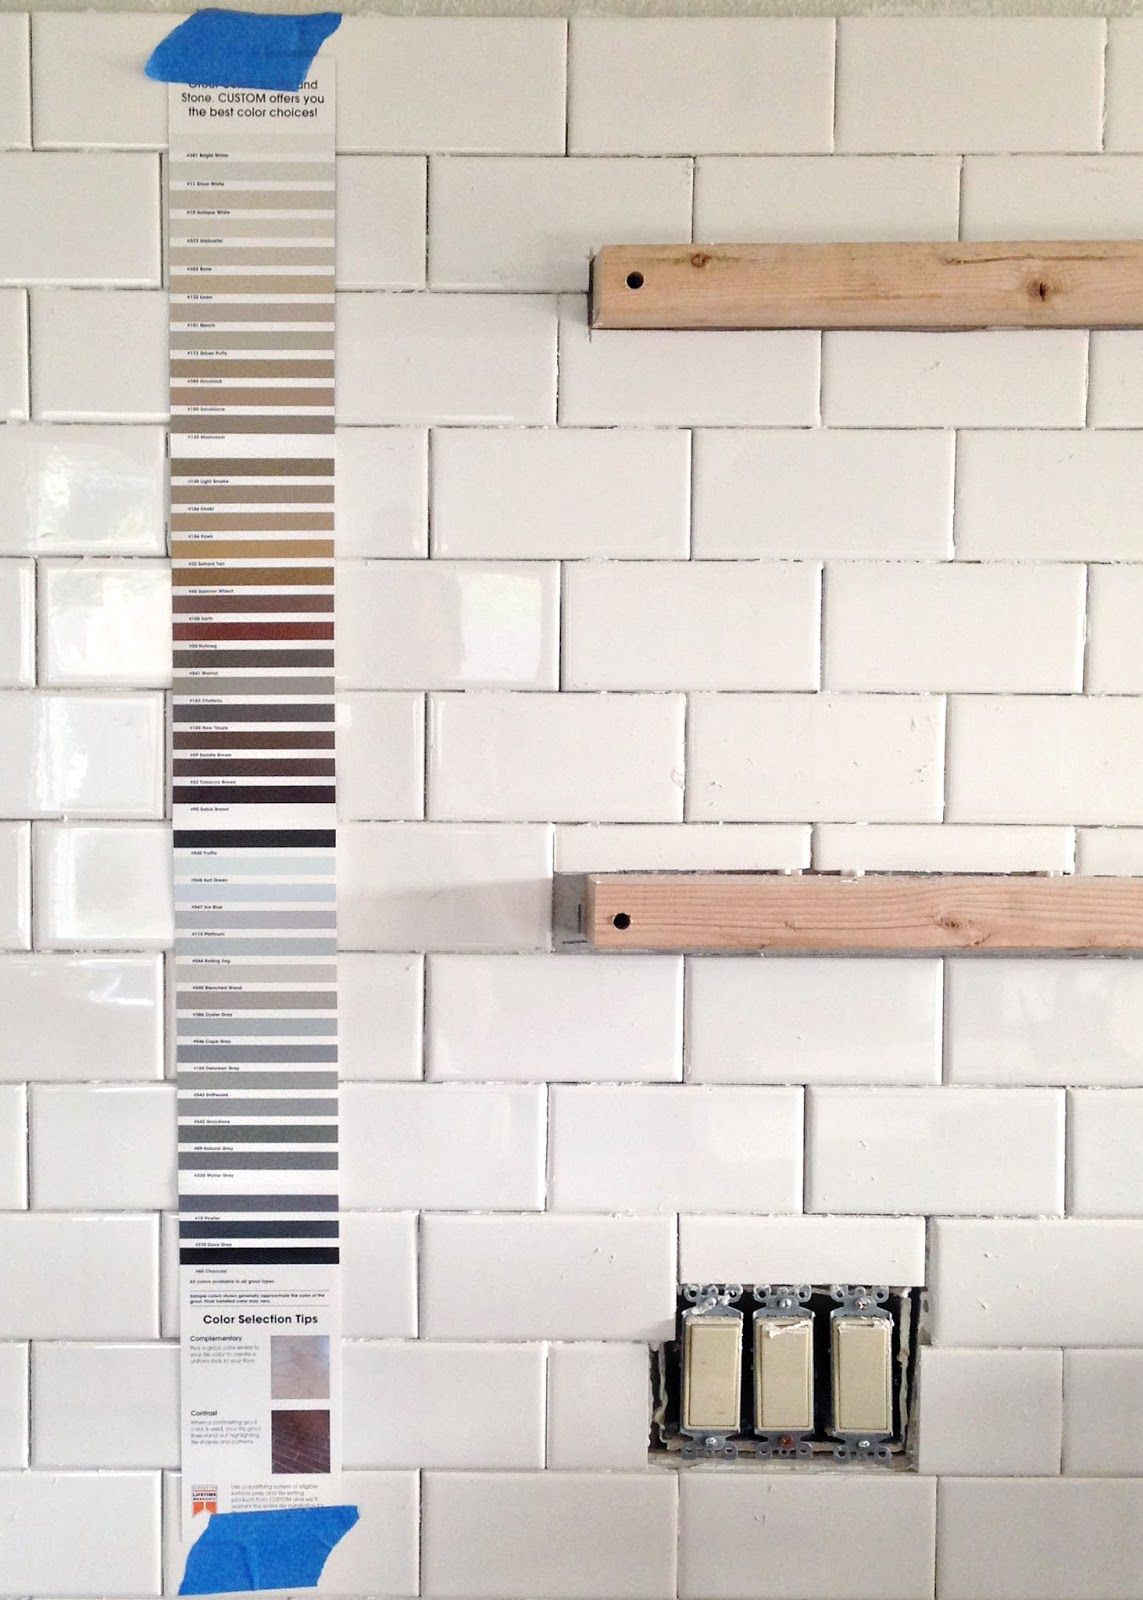 Subway Tile Installation Tips On Grouting With Fusion Pro Beveled Subway Tile Backsplash Subway Tile Design Tile Grout Color